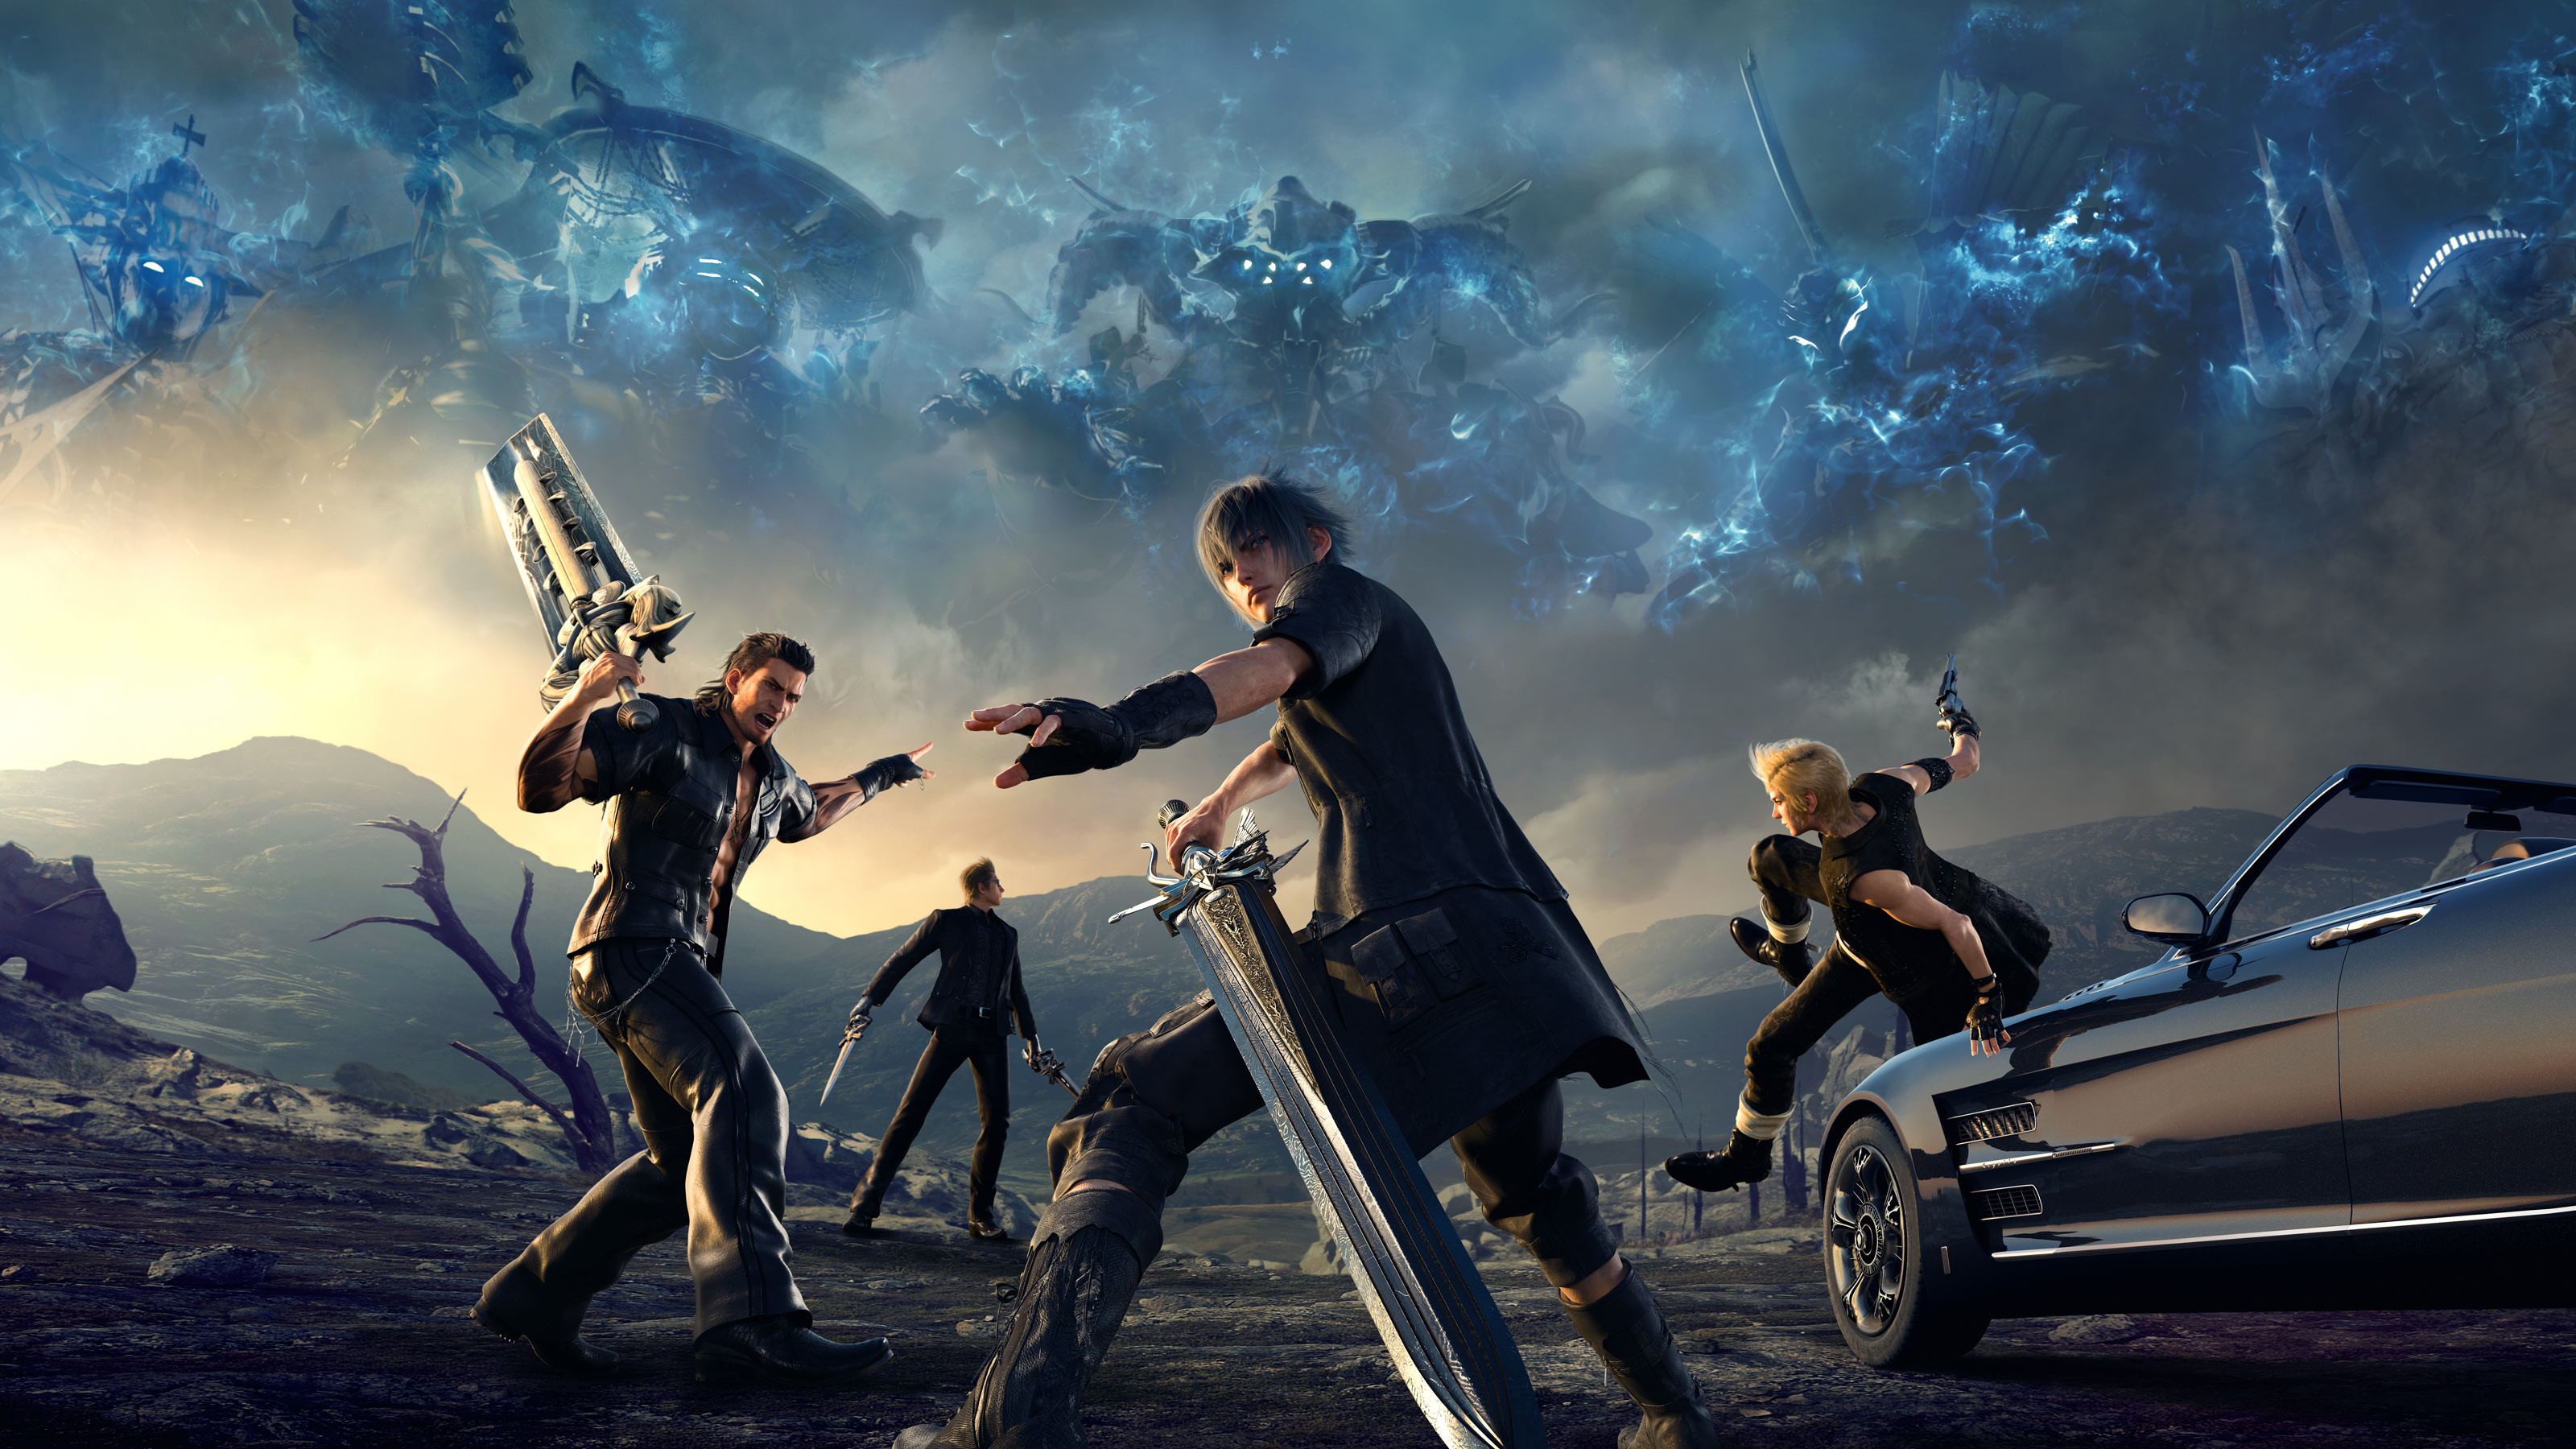 3200x1800 Final Fantasy 15 Noctis Wallpaper Free Is Cool Wallpapers